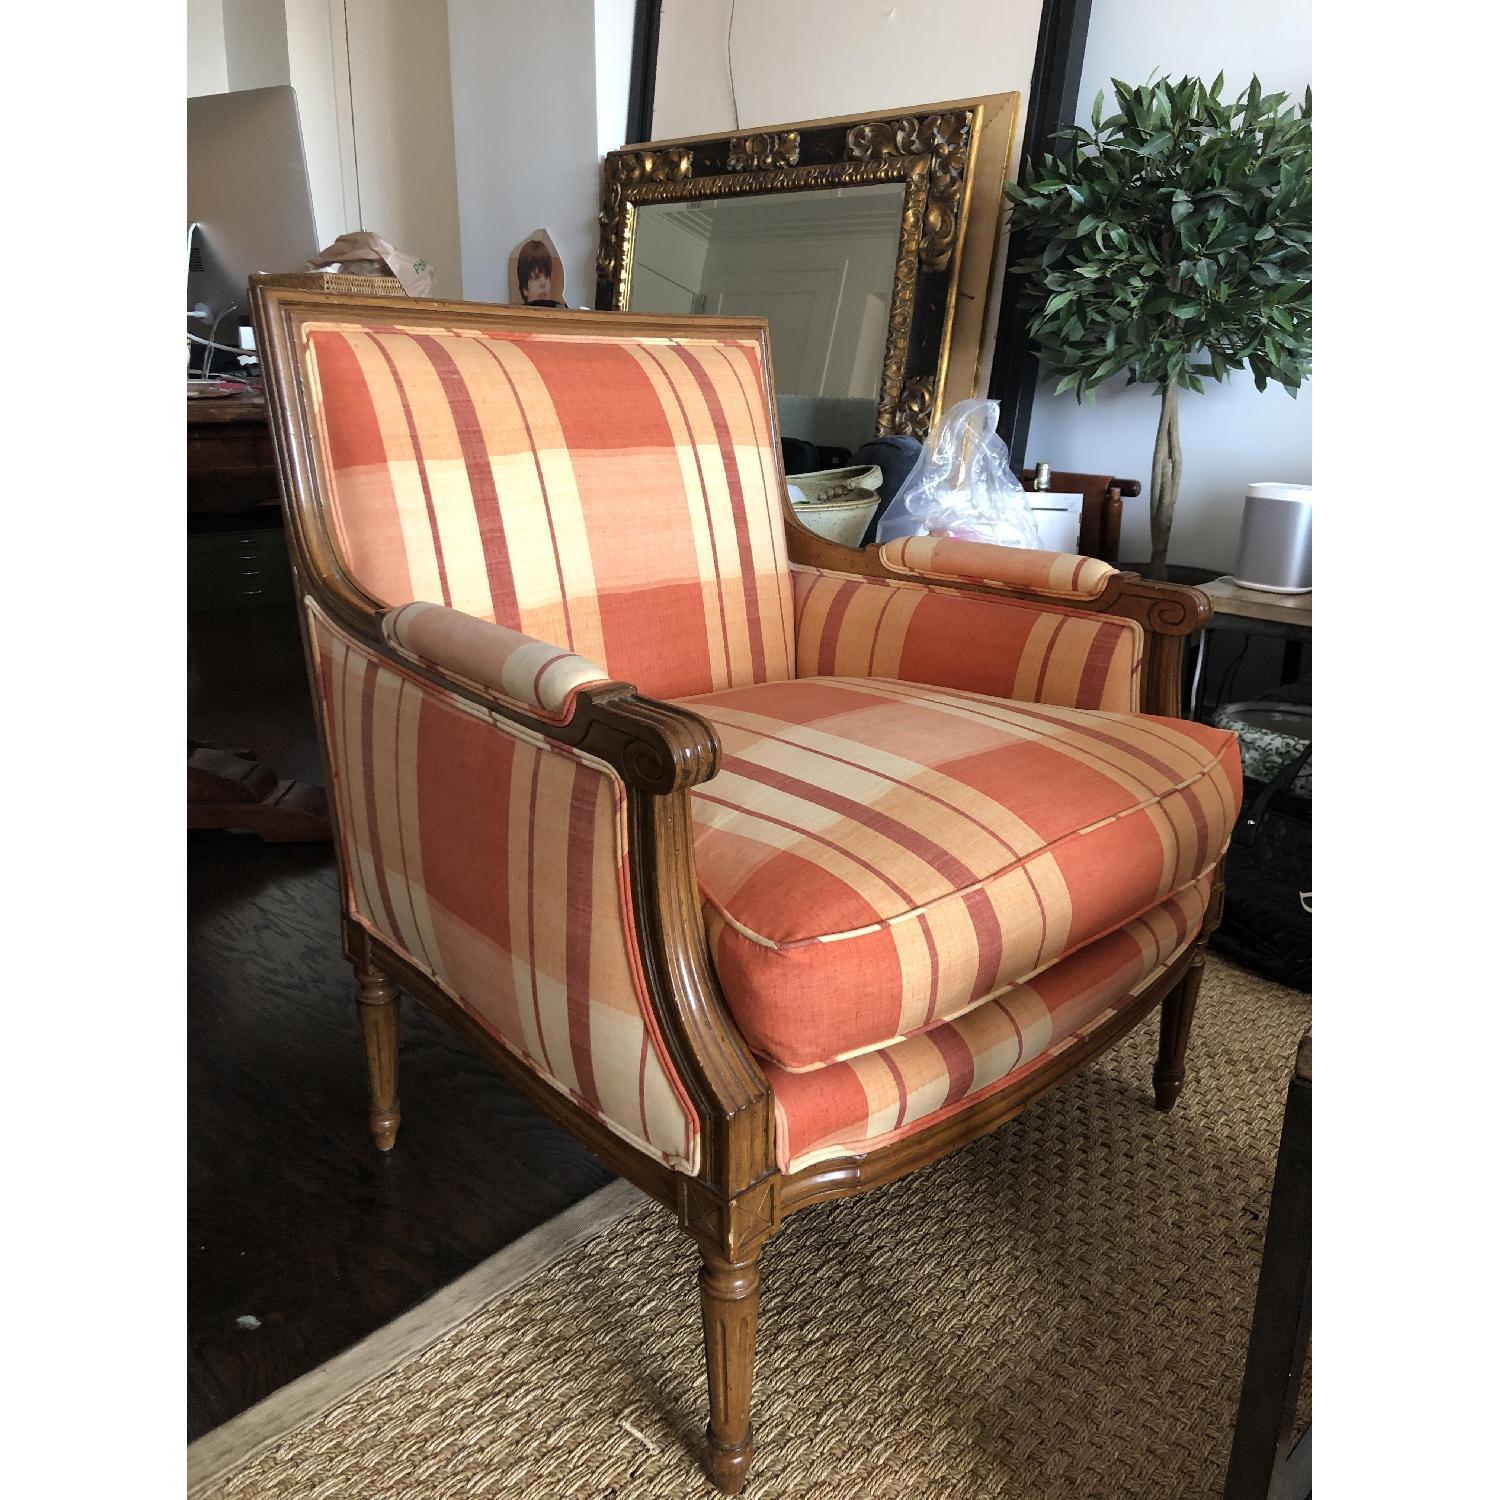 Sunset Bergere Chairs - image-4